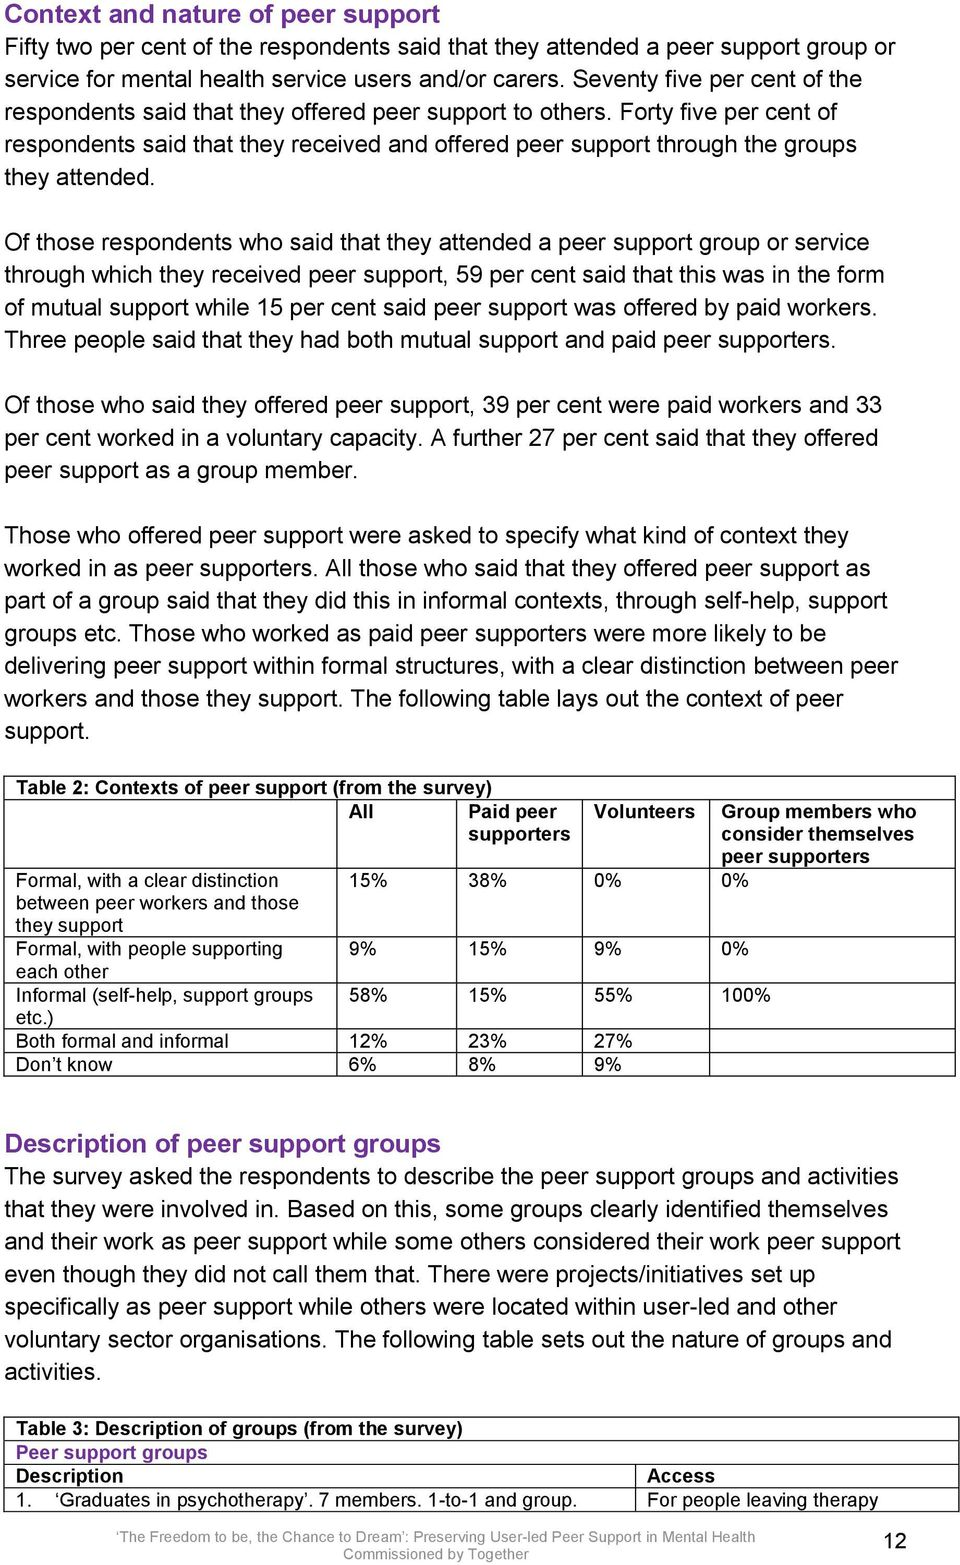 Forty five per cent of respondents said that they received and offered peer support through the groups they attended.